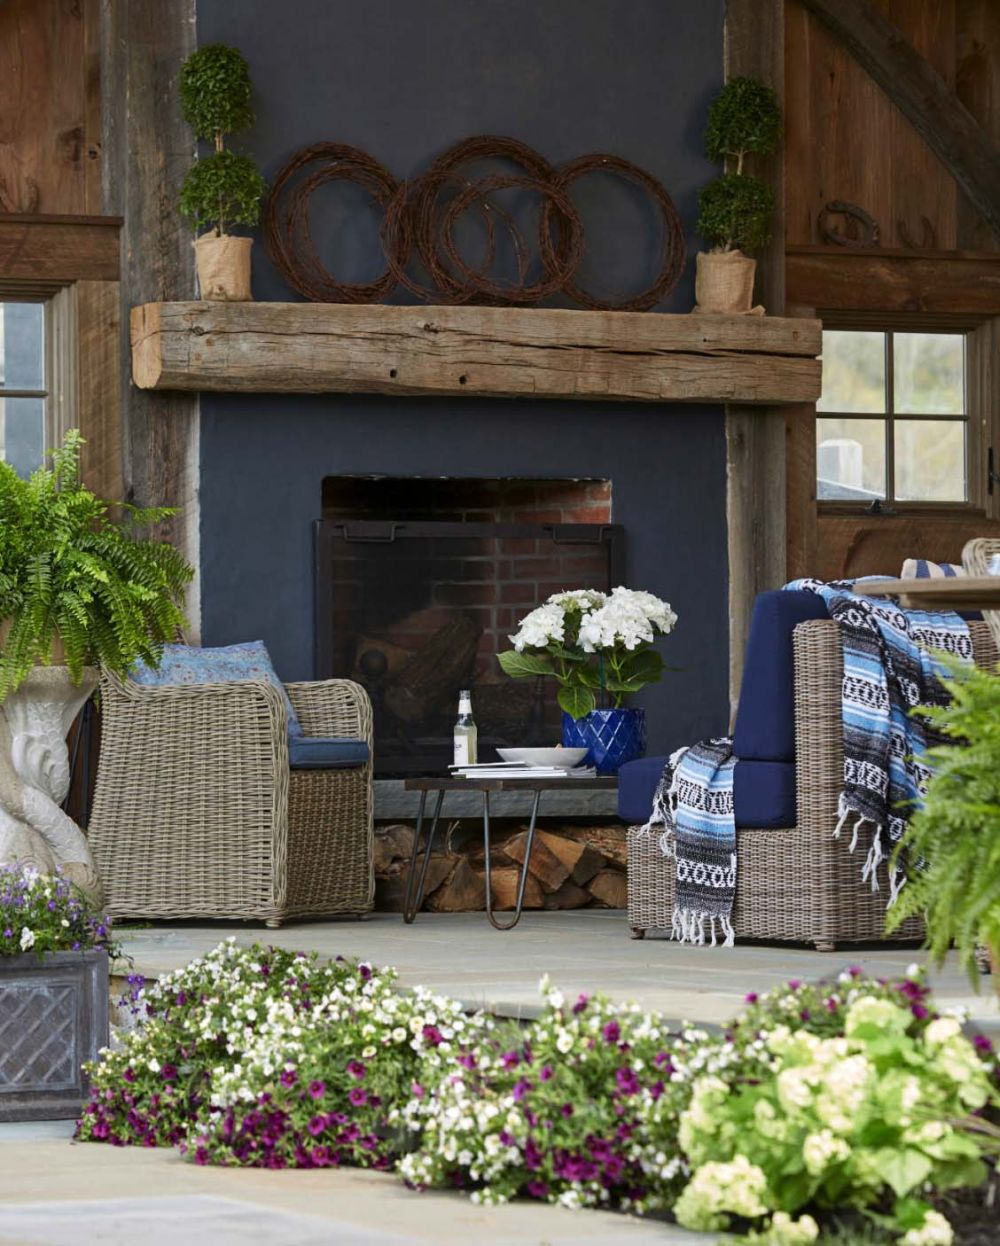 An outdoor fireplace makes the porch feel just a second living room